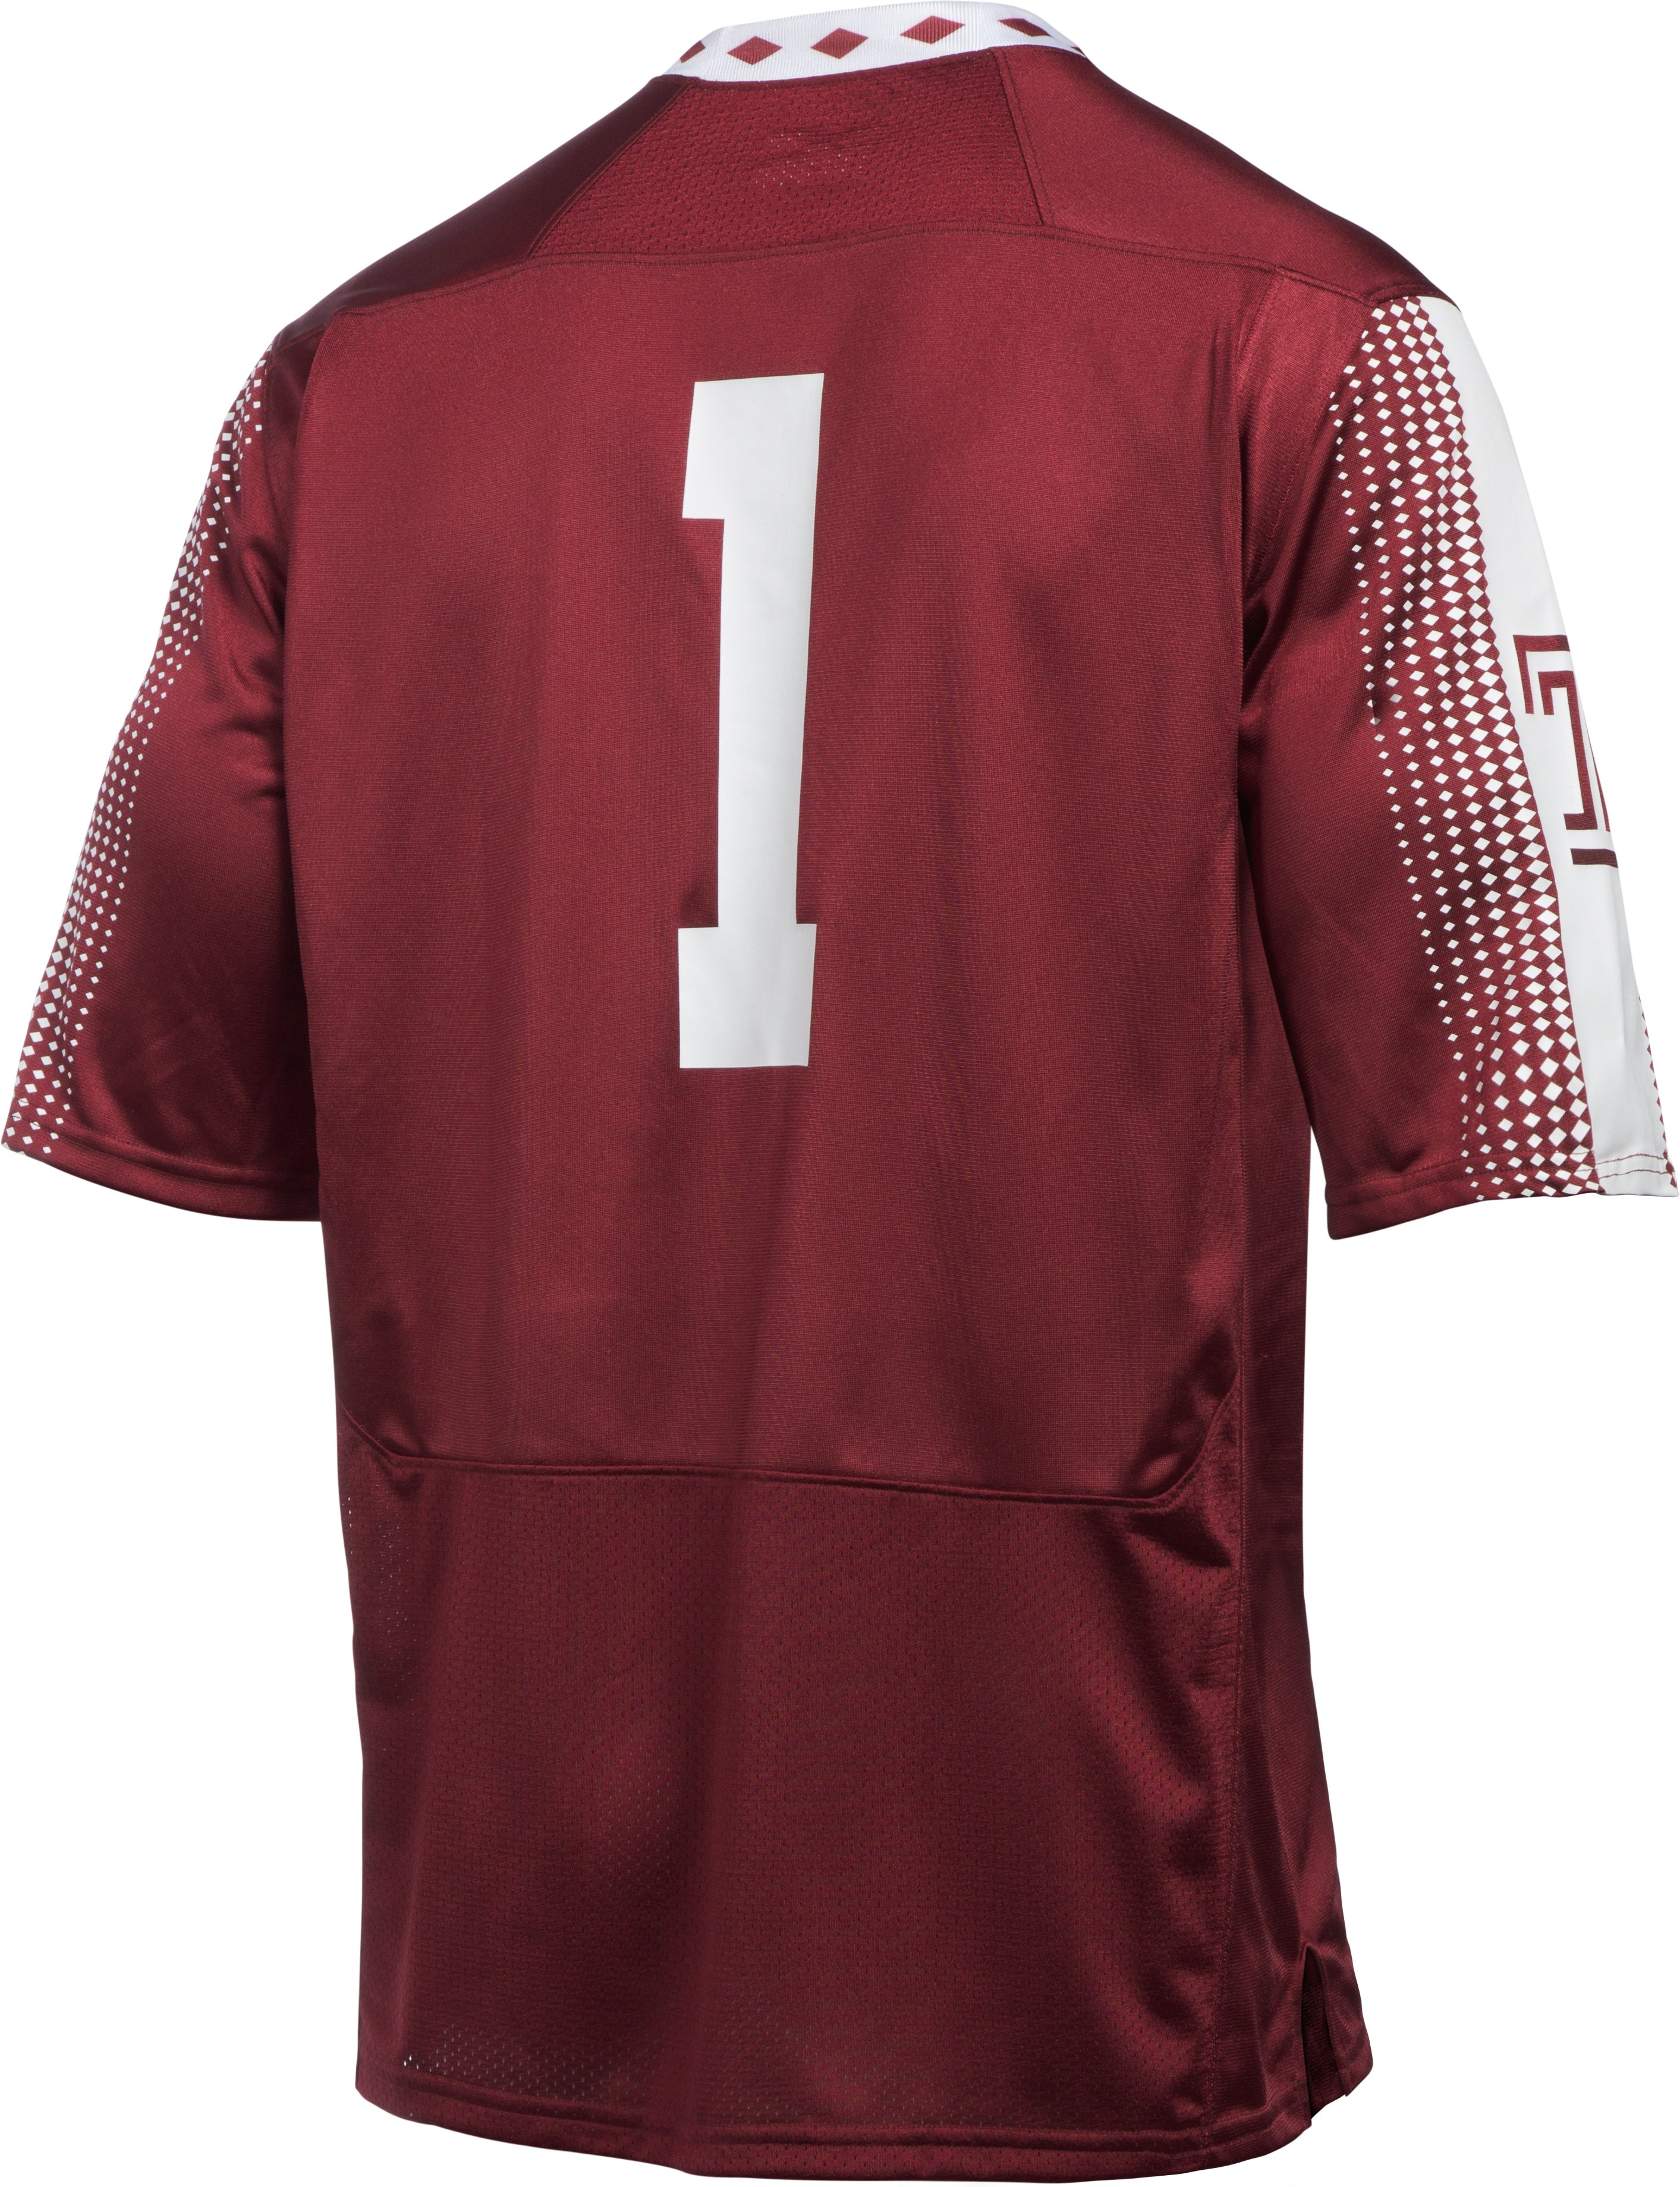 Men's Temple UA Replica Football Jersey, Maroon, undefined